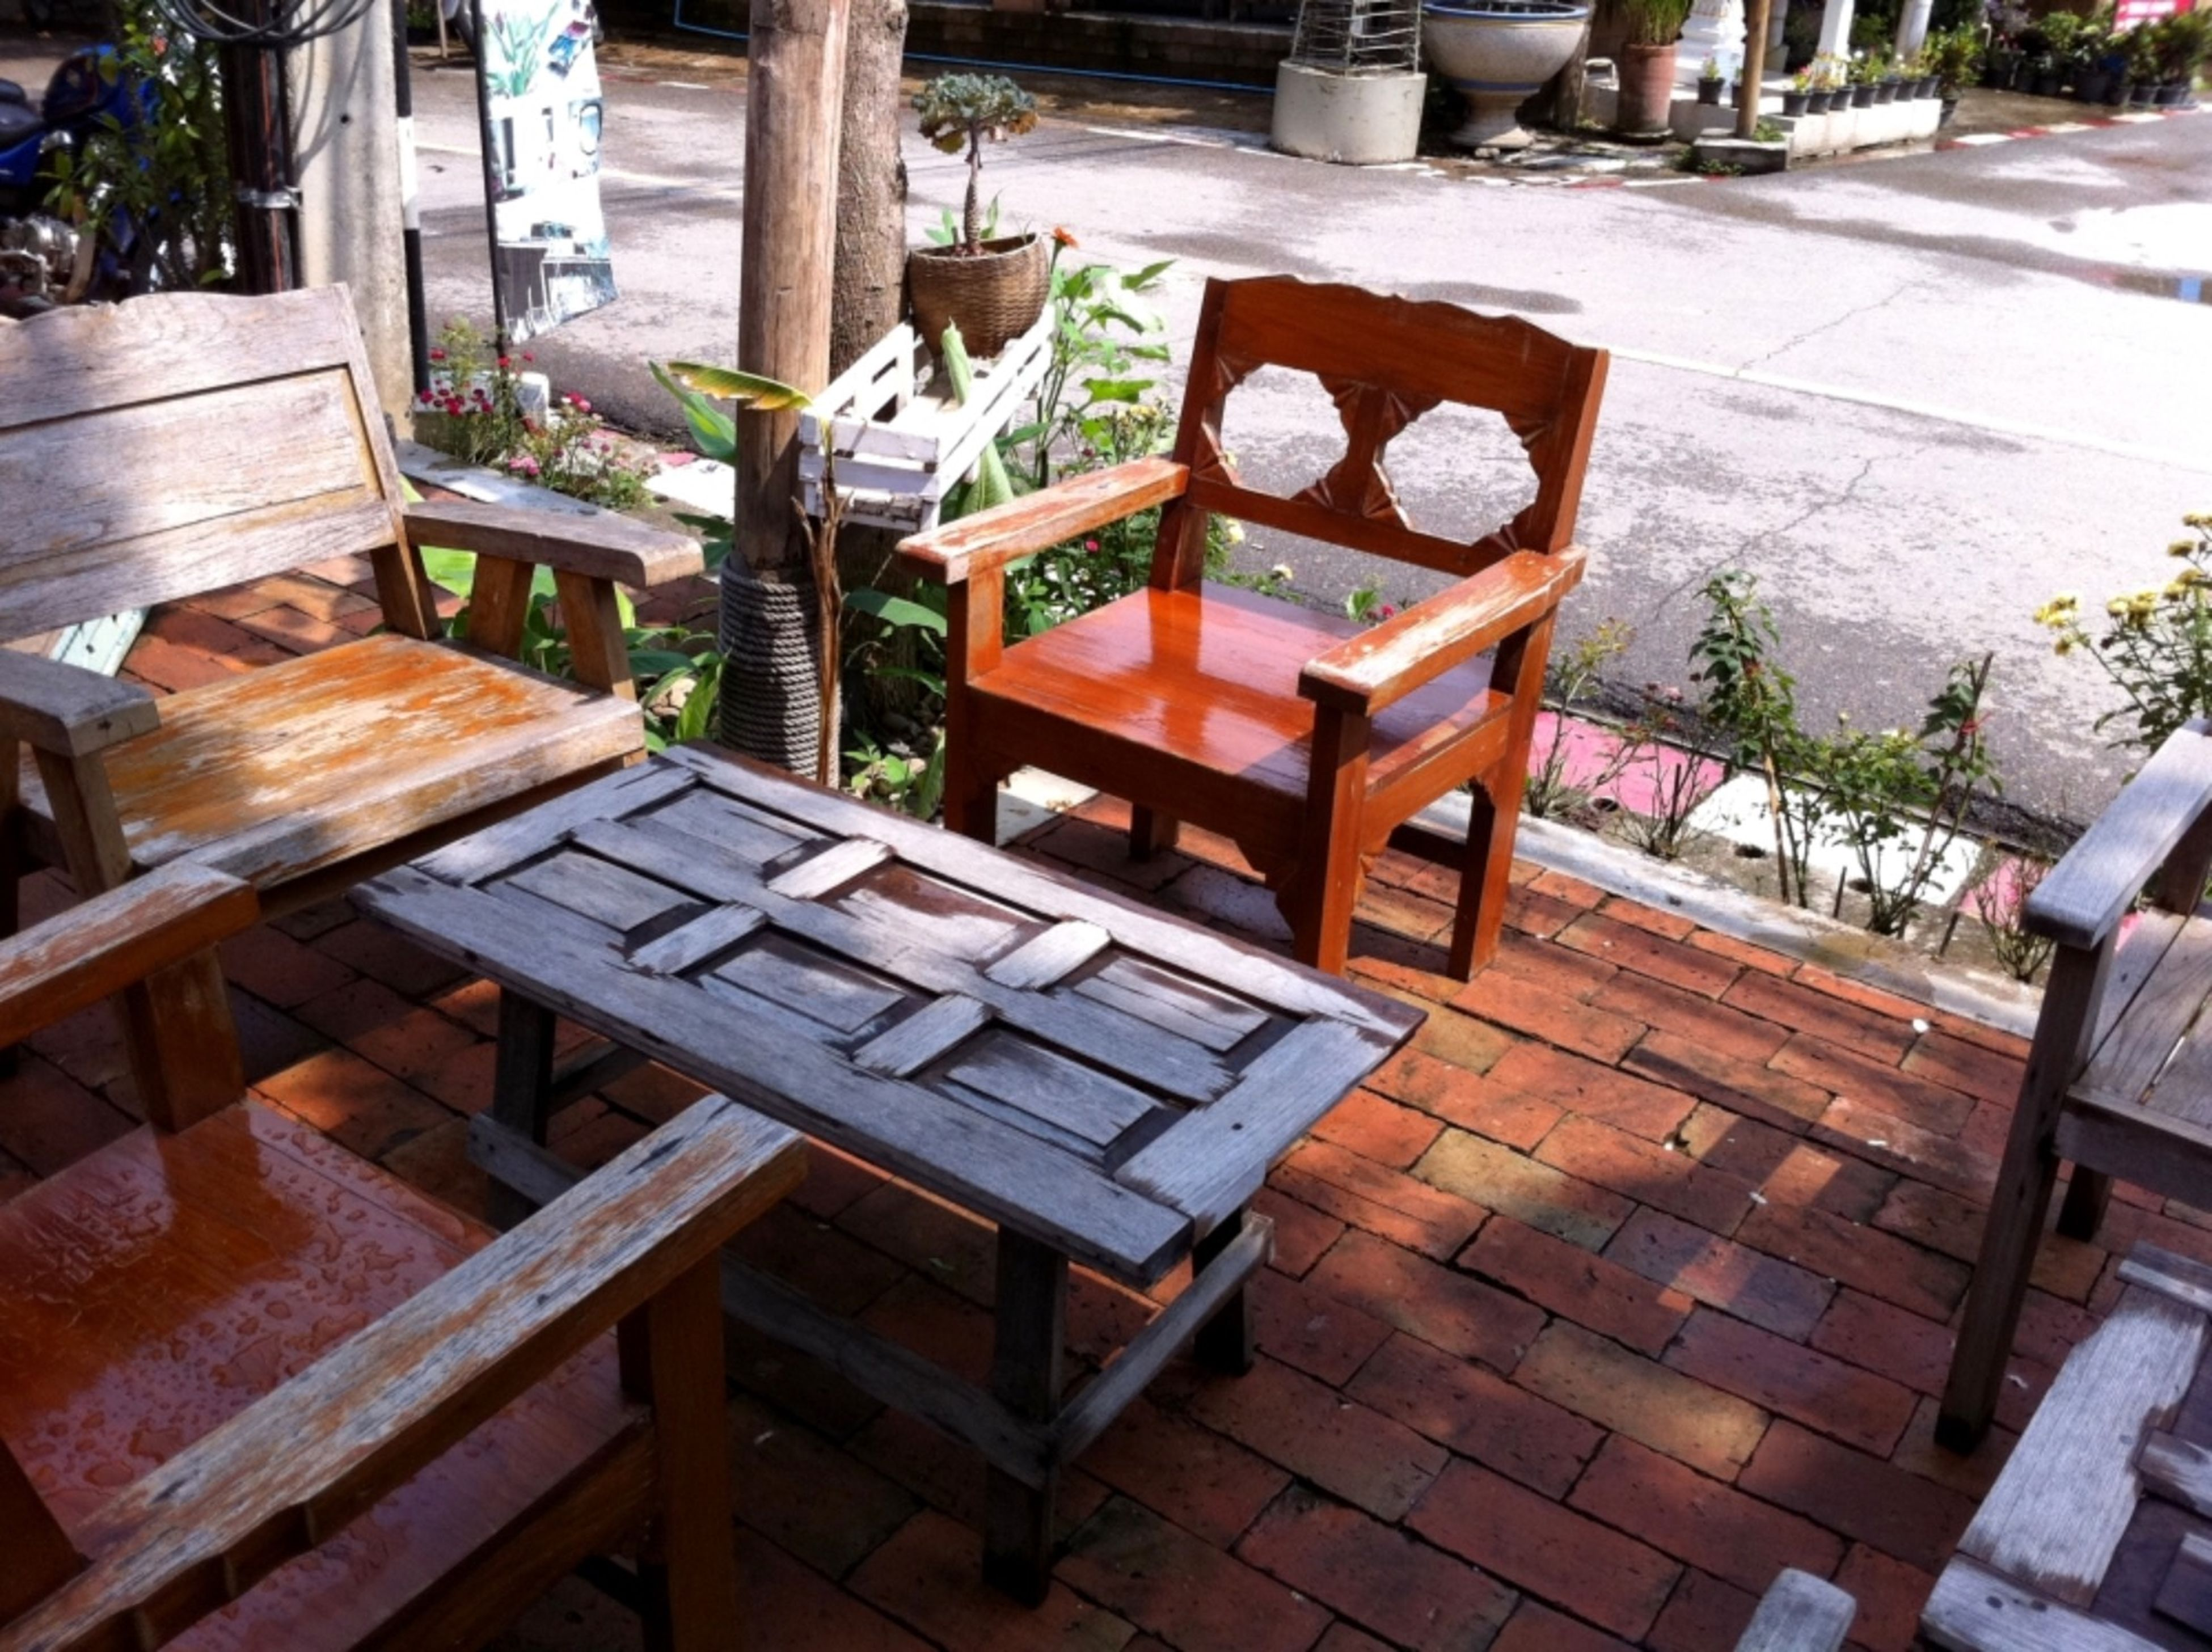 chair, wood - material, table, bench, empty, absence, wooden, seat, sunlight, day, no people, outdoors, furniture, high angle view, front or back yard, tree, wood, sidewalk, potted plant, paving stone